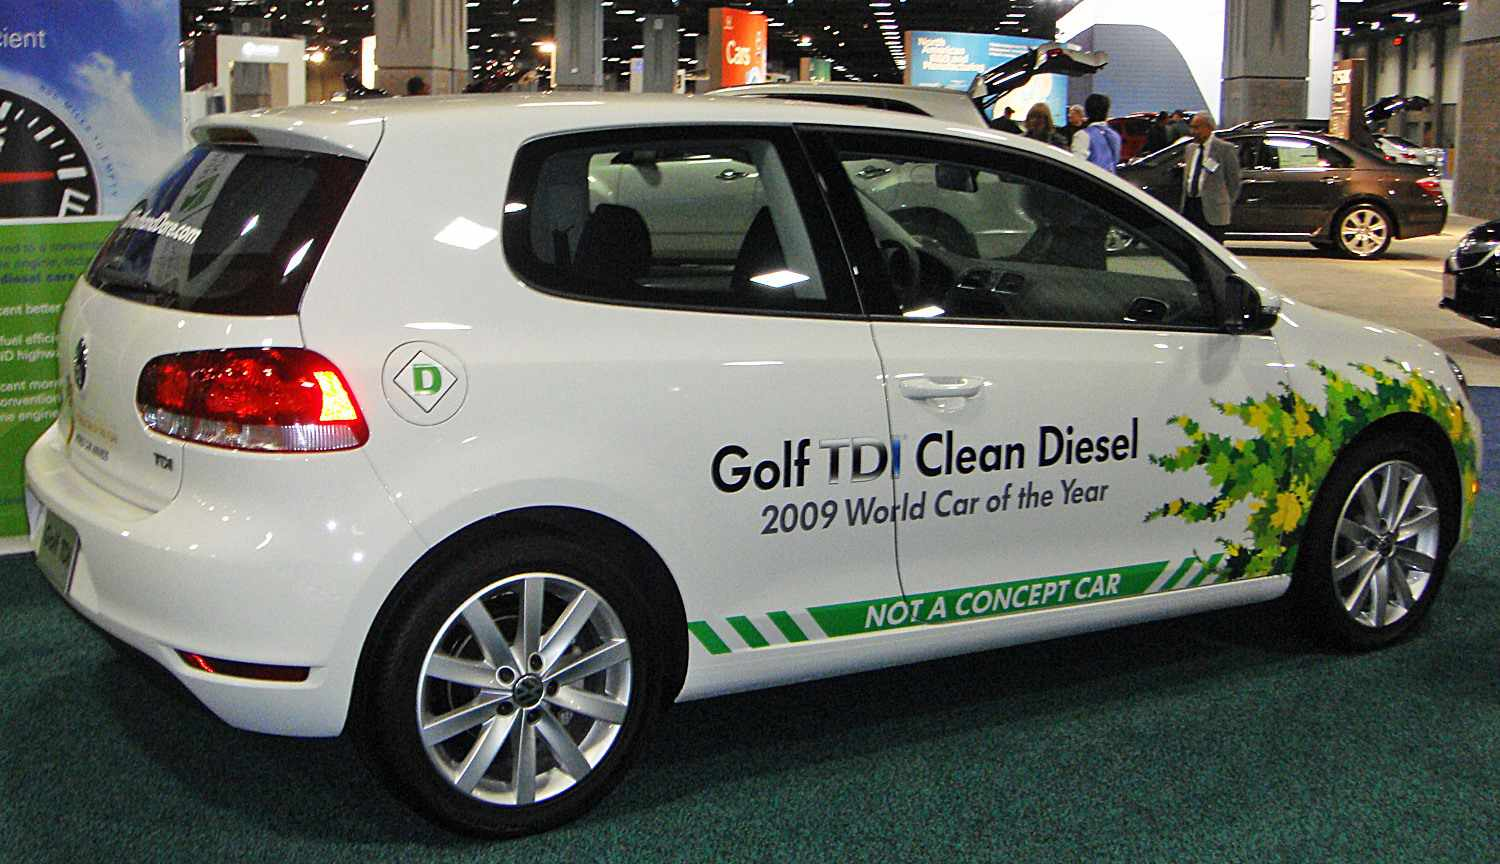 VW's Golf TDI was the Green Car of the Year in 2009